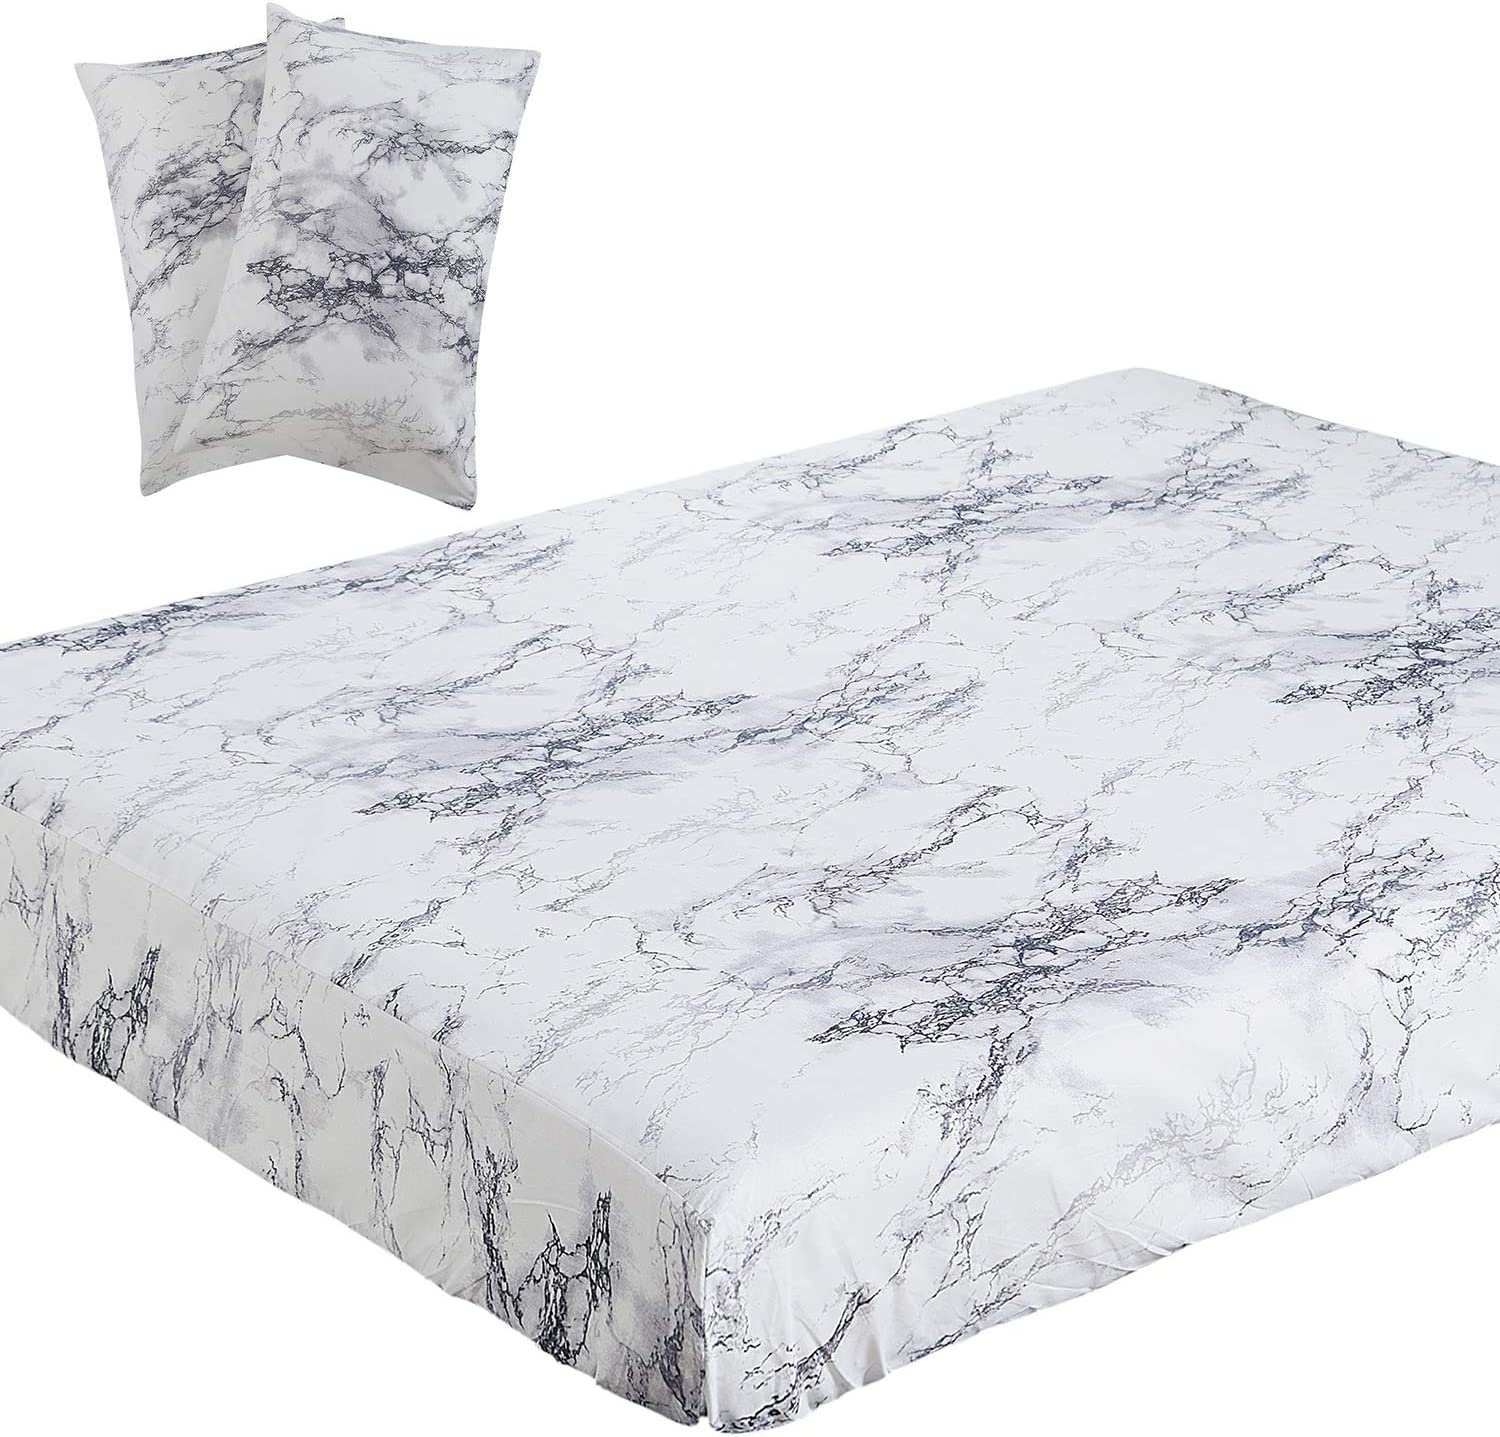 Vaulia Lightweight Microfiber Sheets, White Marble Printed Pattern, King Size 3-Piece ( 1 Fitted Sheet, 2 Pillowcases )